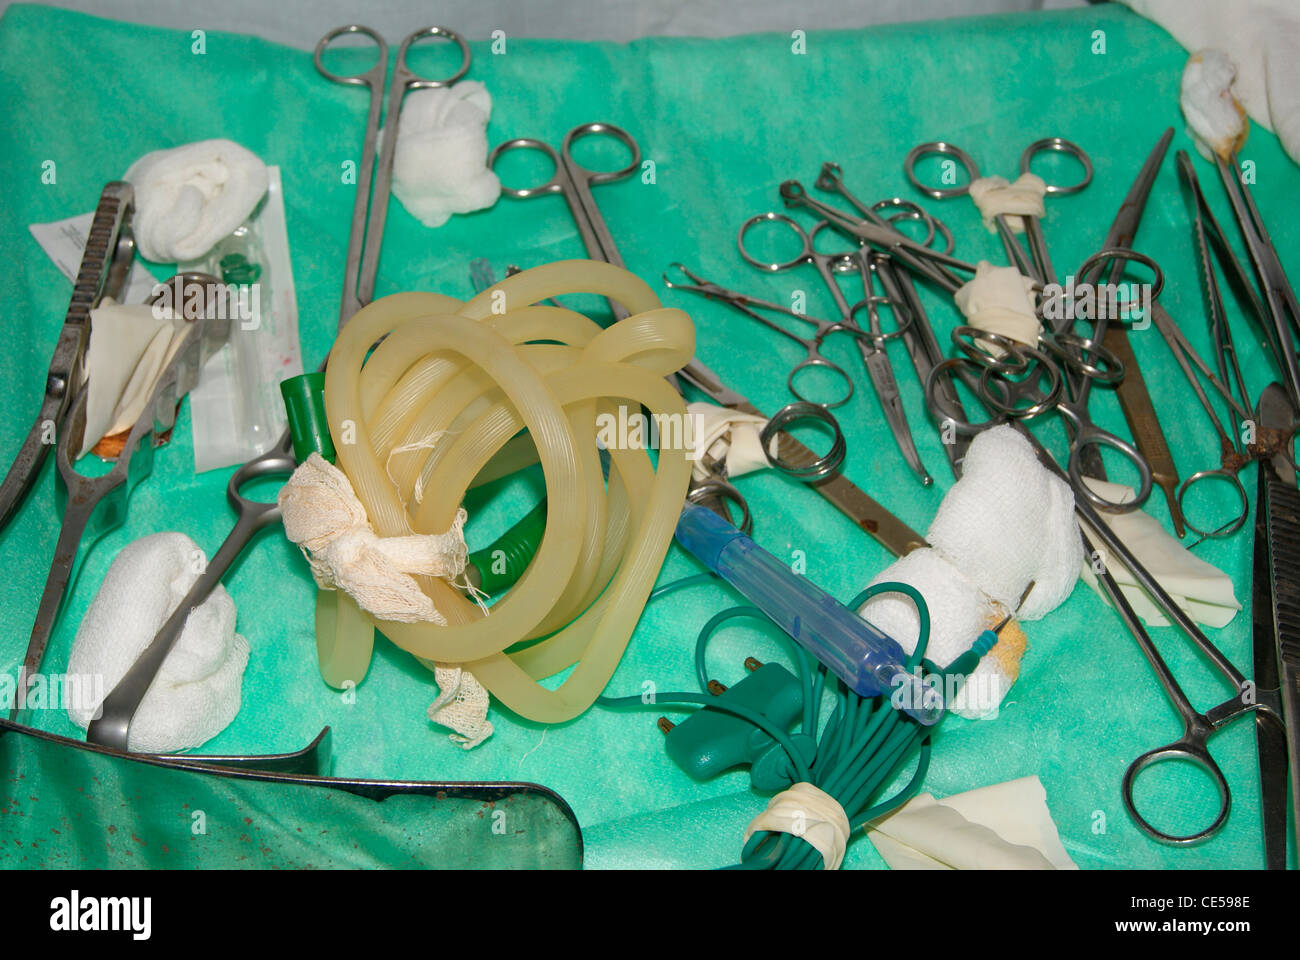 Medical equipments including different types of scissors,medical tubes etc. - Stock Image